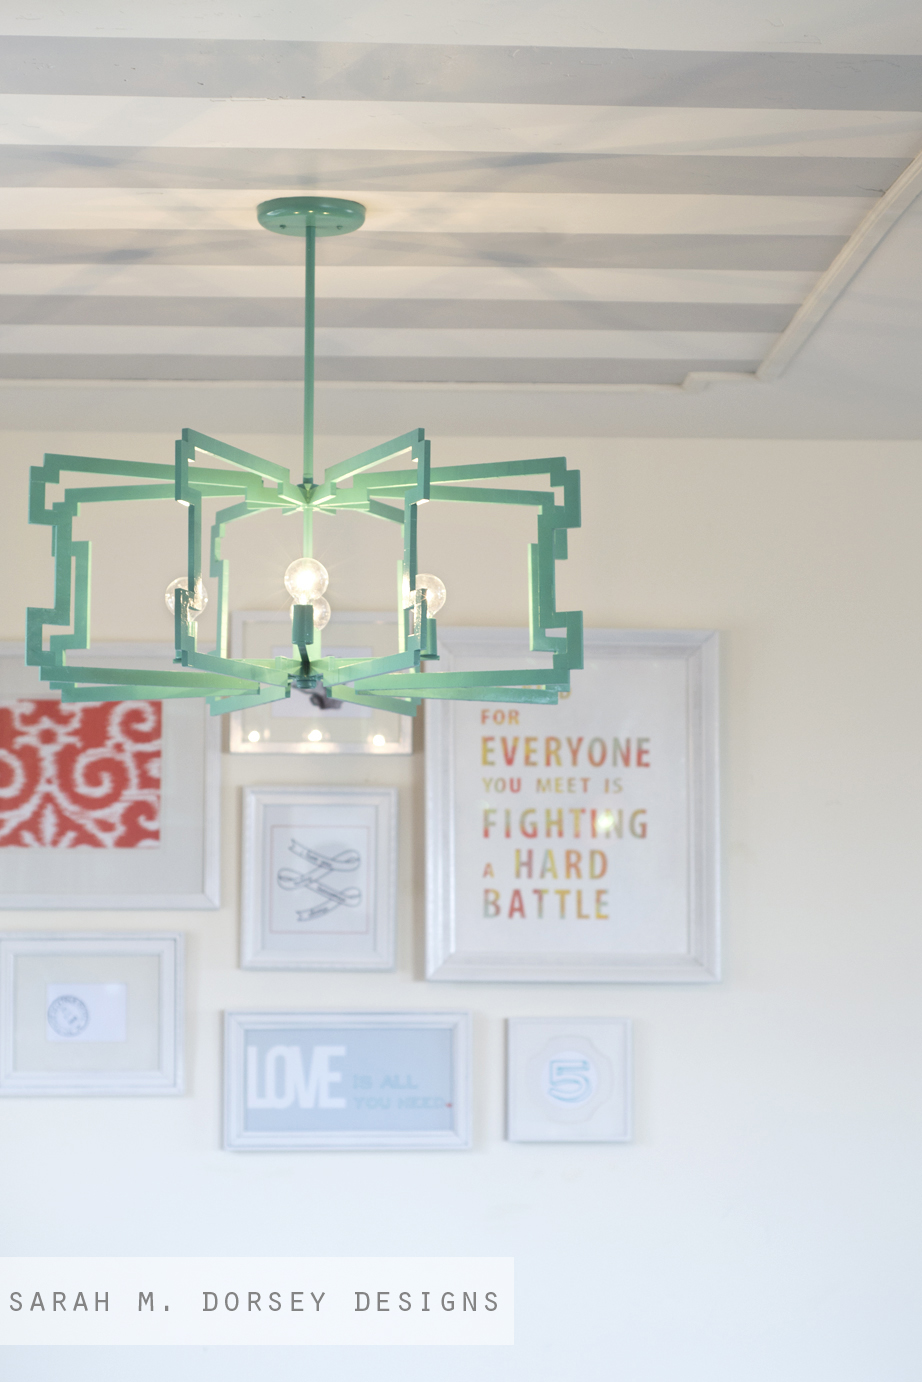 sarah m. dorsey designs: From Fluorescent Diffuser to Statement Pendant